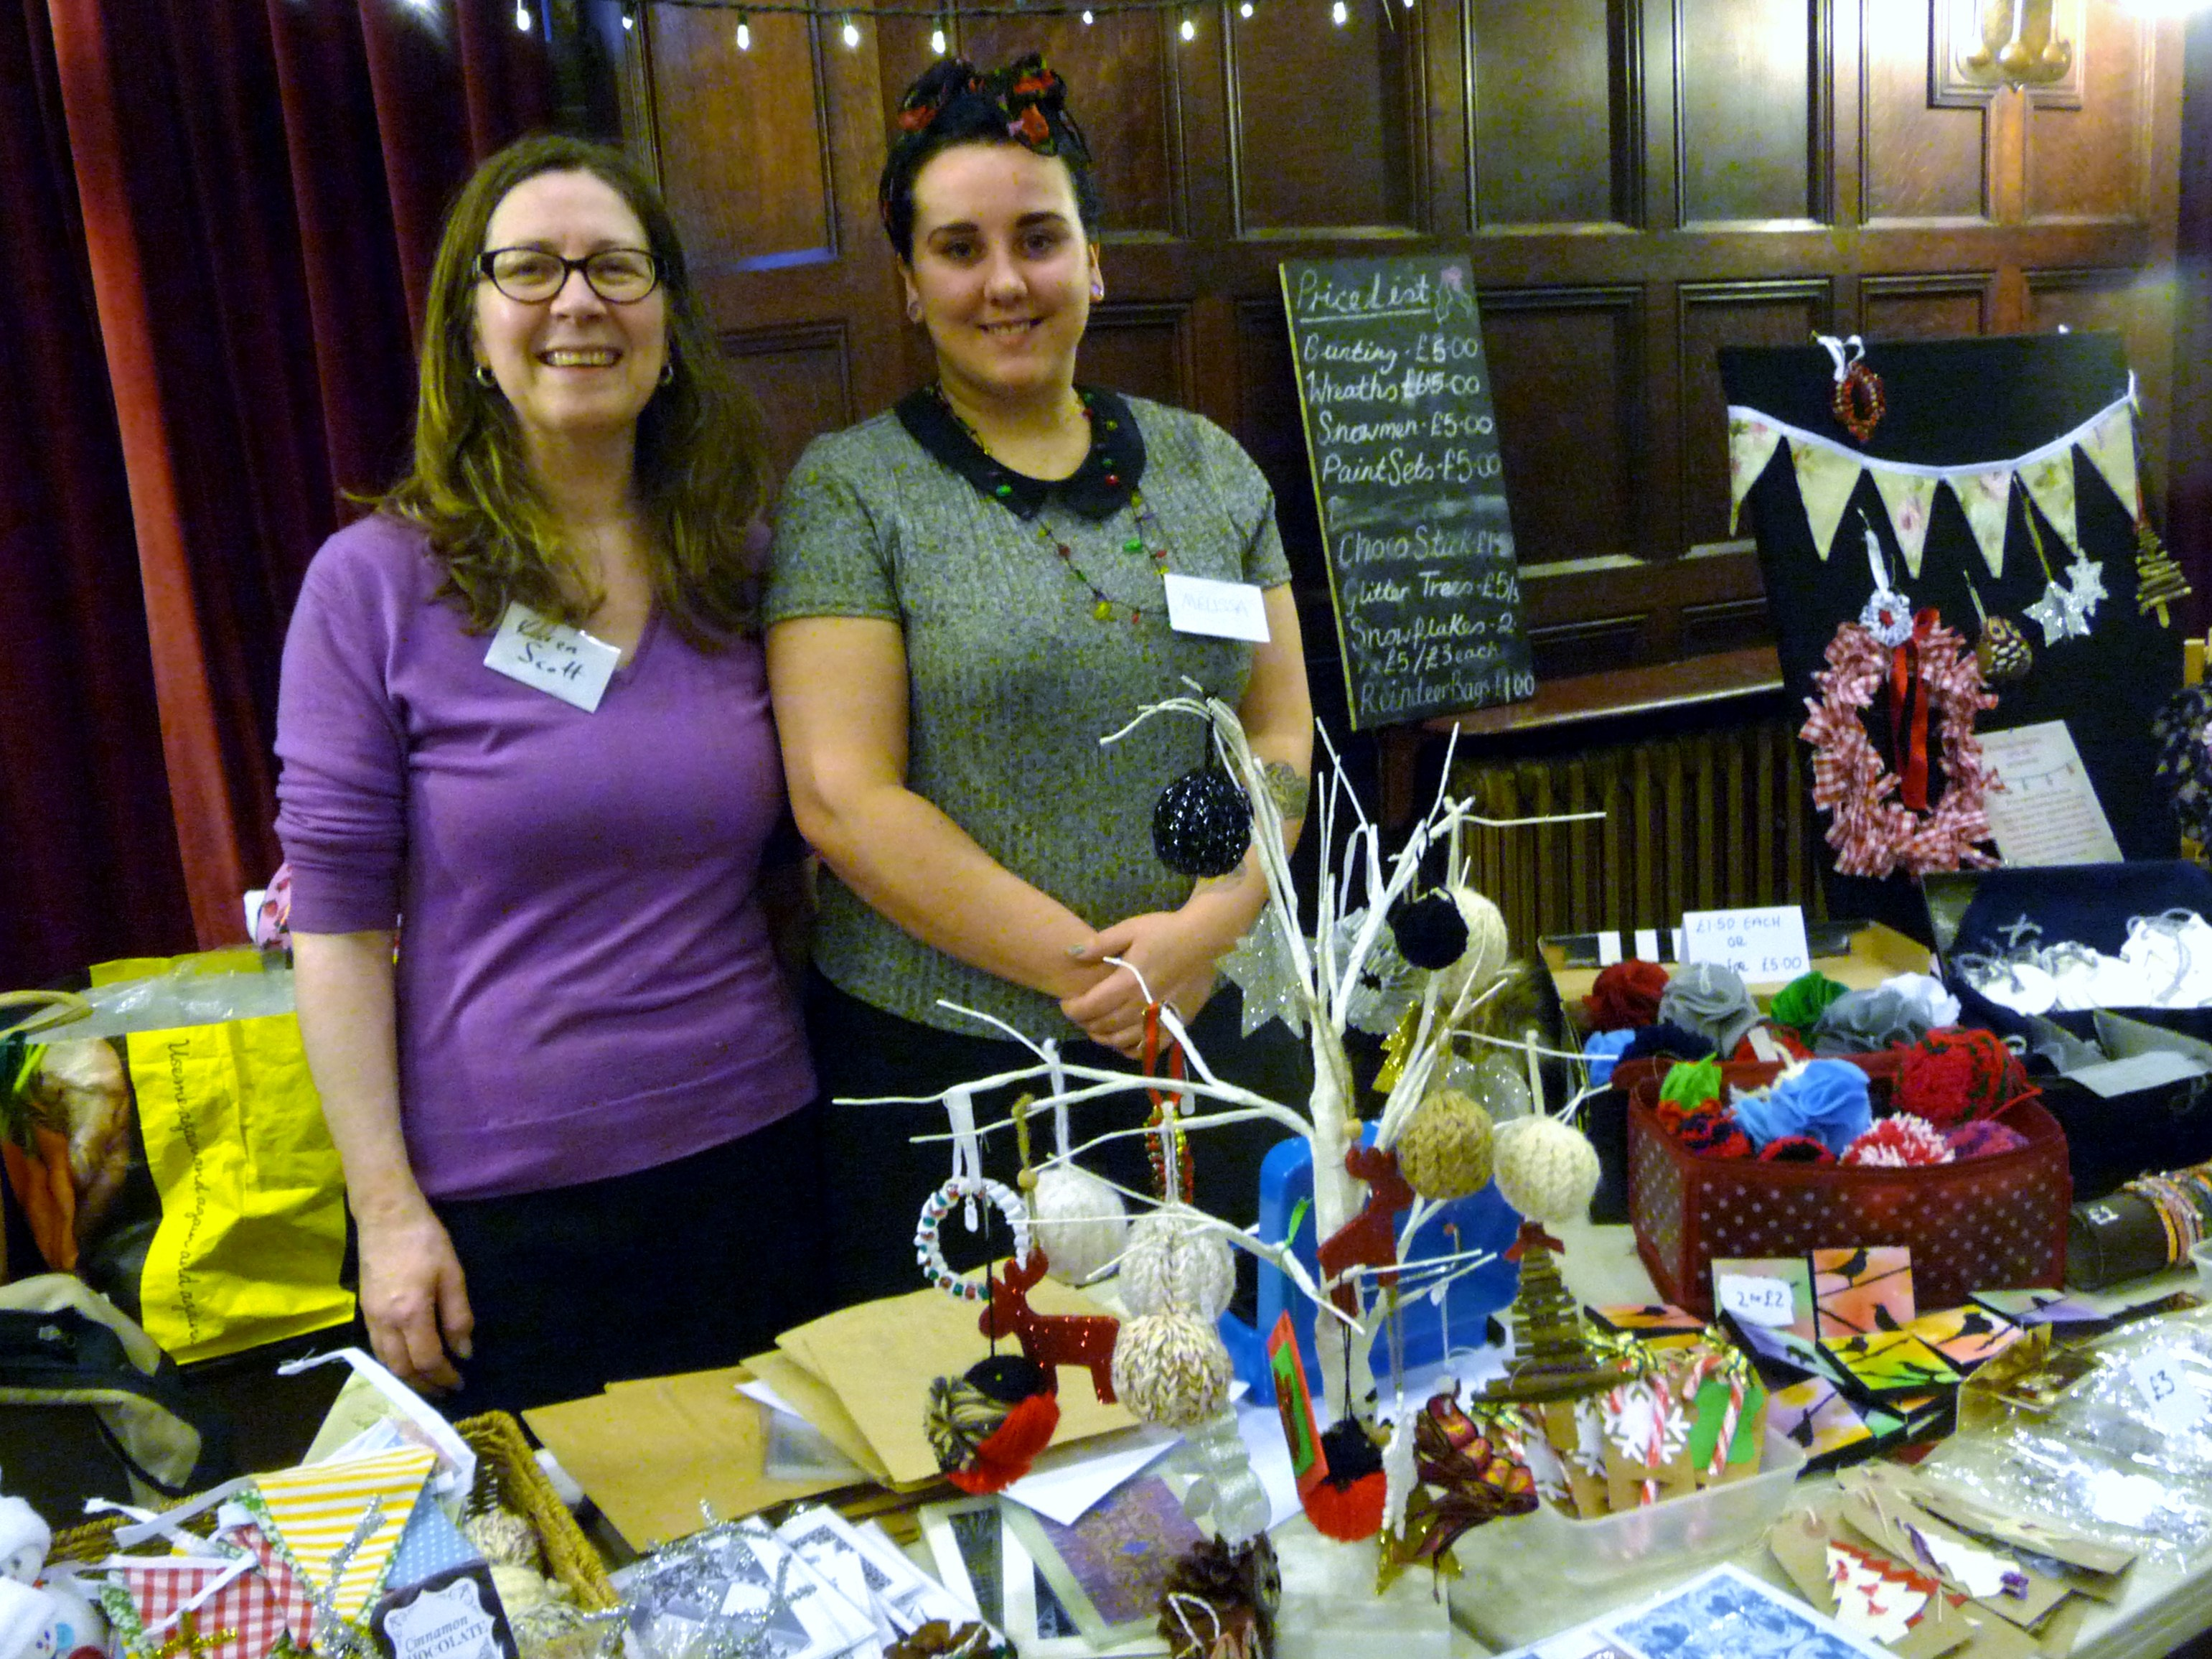 MEG Christmas Party 2015- Karen Scott and Melissa Courtney with their Hope University stall